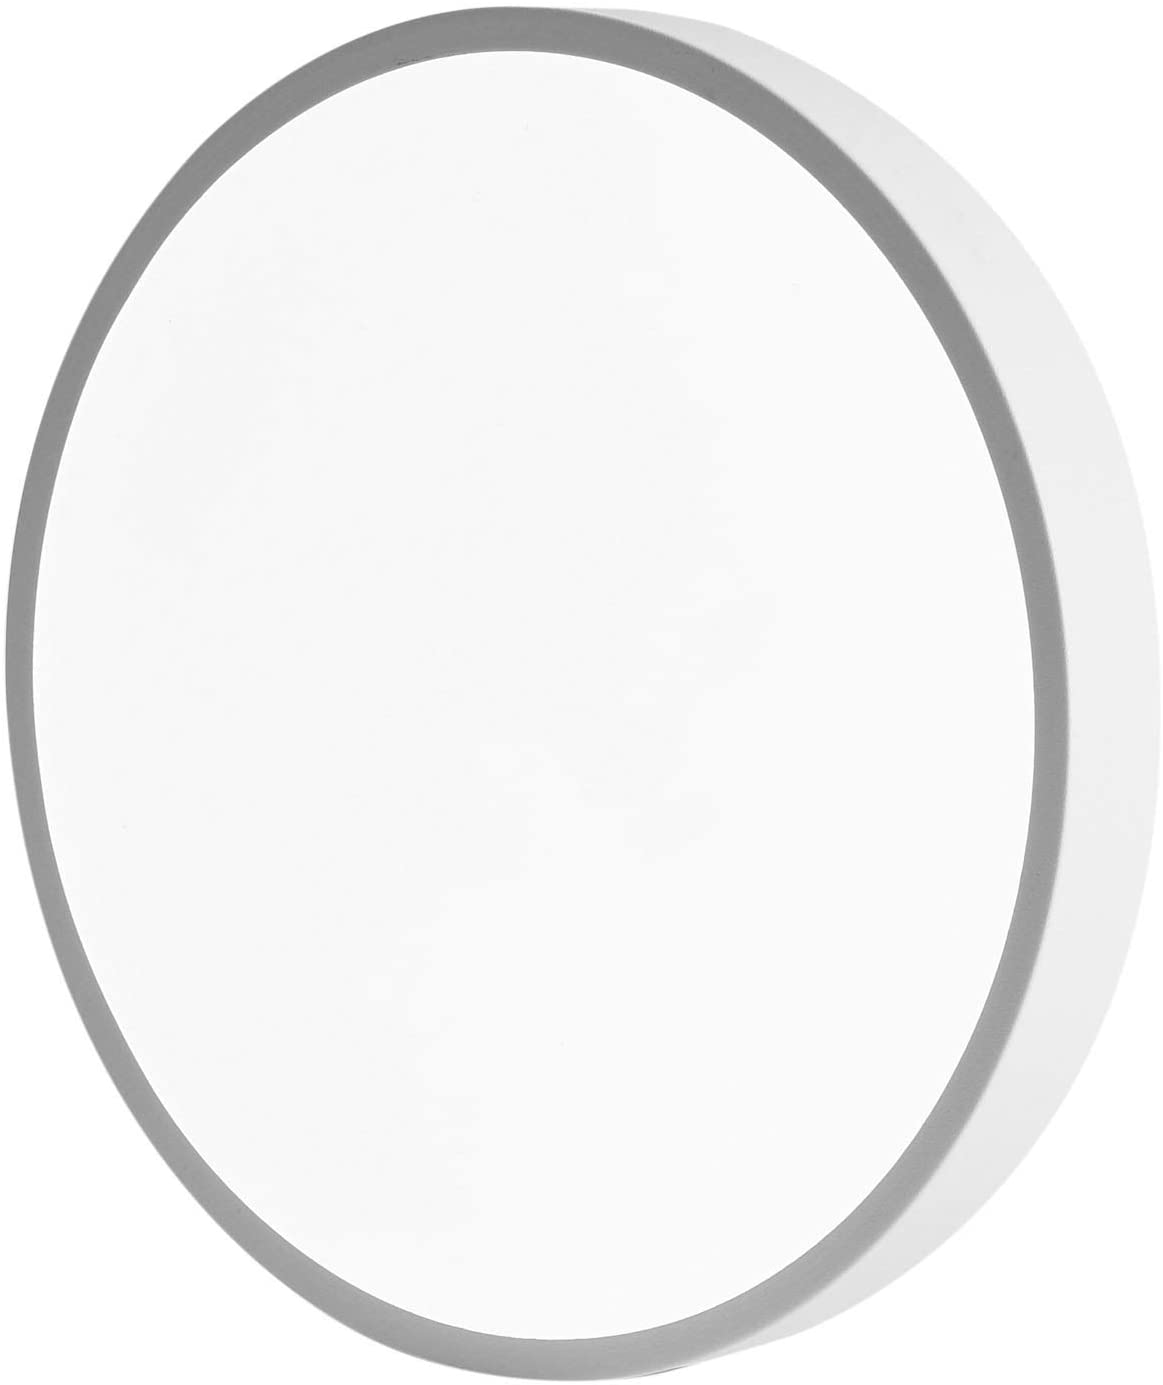 LED Ceiling Lights Modern Ceiling Lamp,48W(260W Equivalent)24-Inch 2800-6500K Dimmable Round Flush Mount Lighting Fixture,80-90Ra+,ETL List,Kitchen Light Fixture for Hallway Office,White